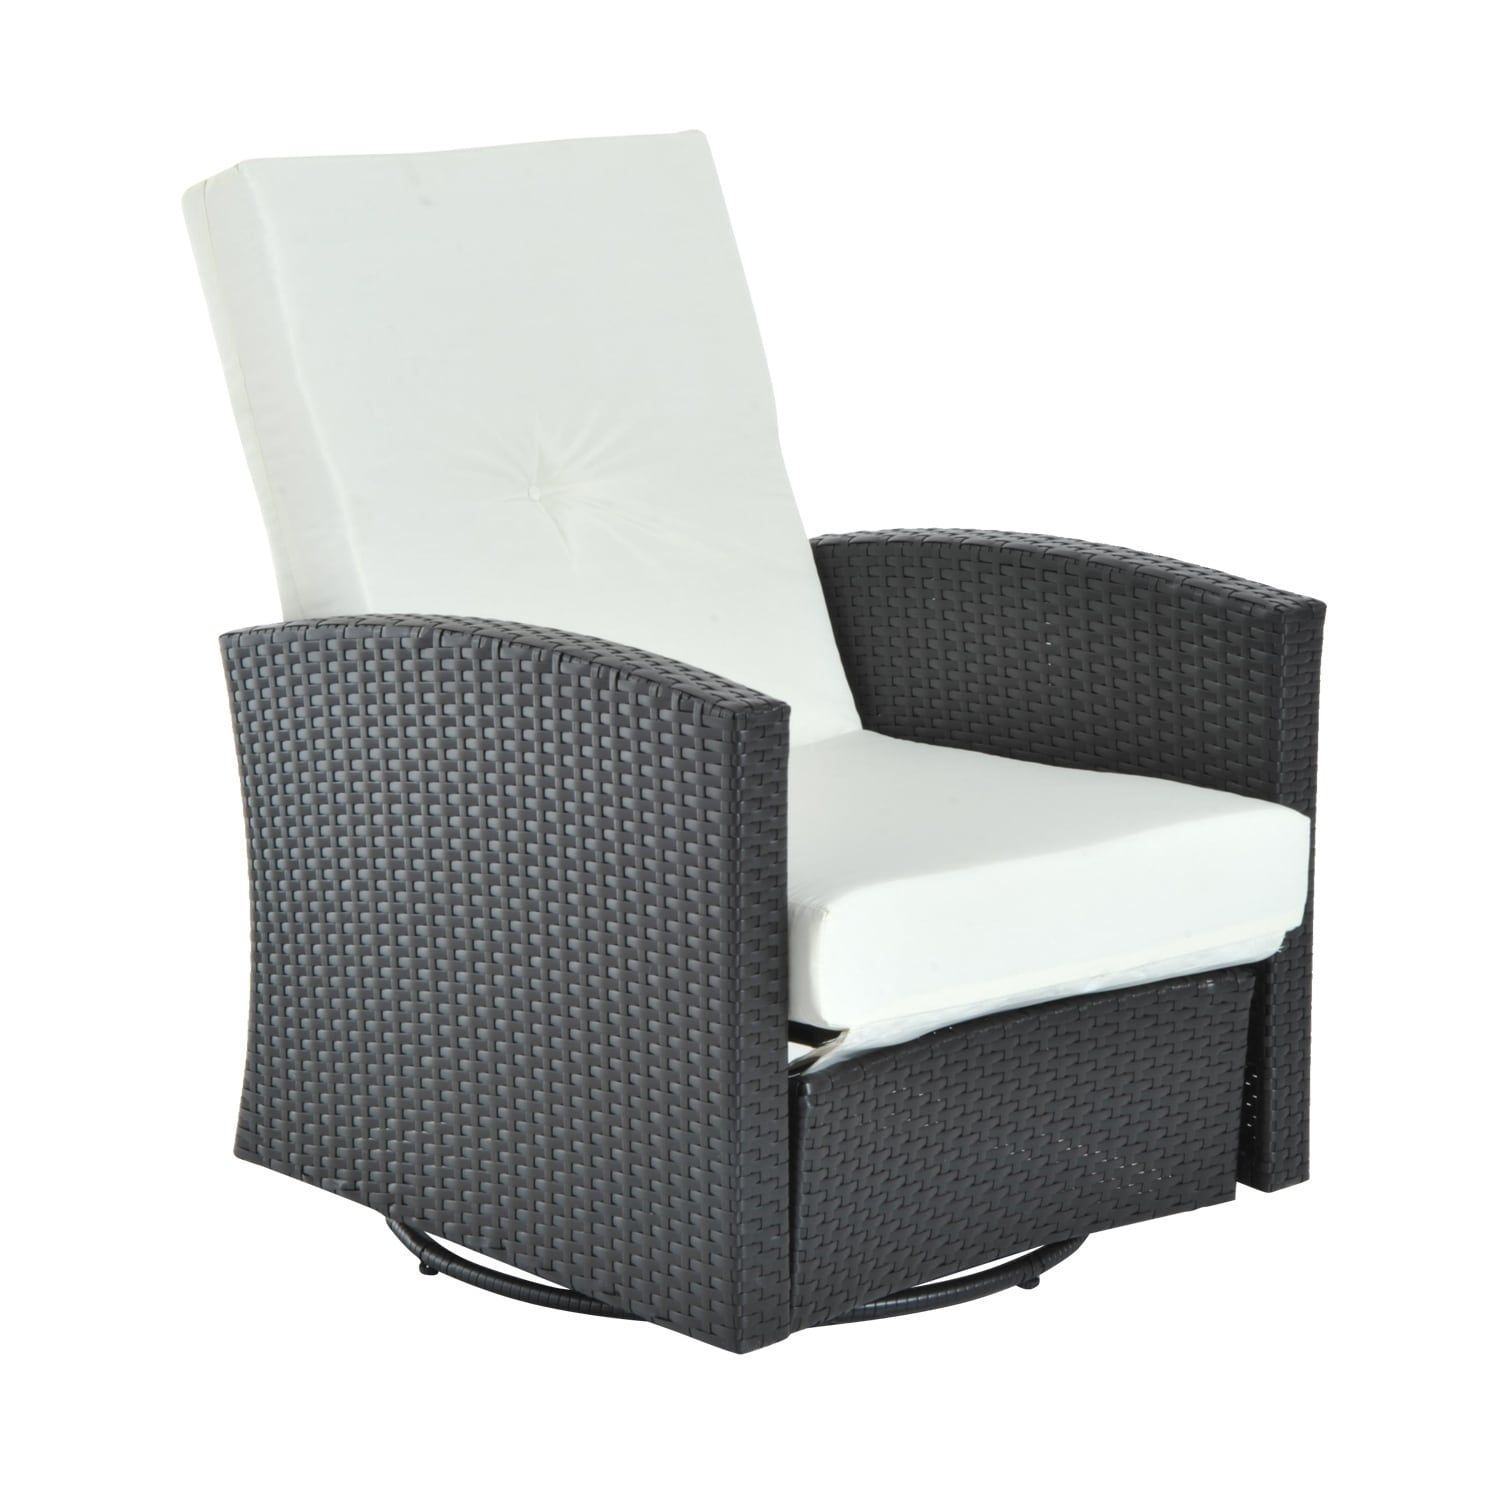 outdoor and on recliner cushion chair design home with interior easylovely ideas inspiration attractive remodeling